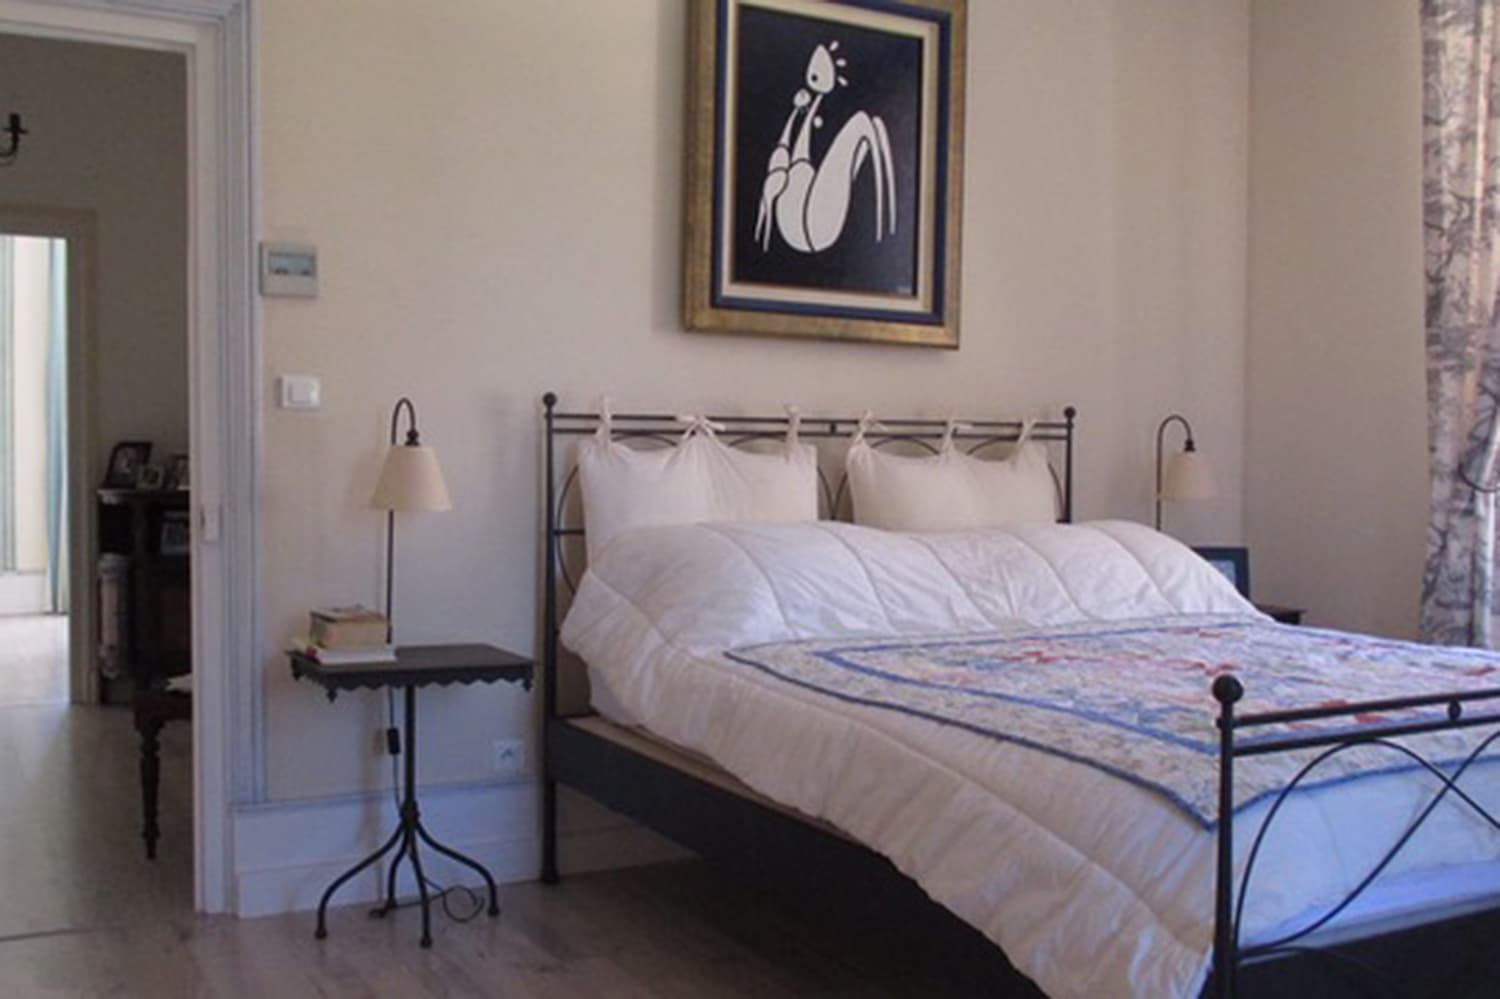 Bedroom in Carsac-Aillac rental home